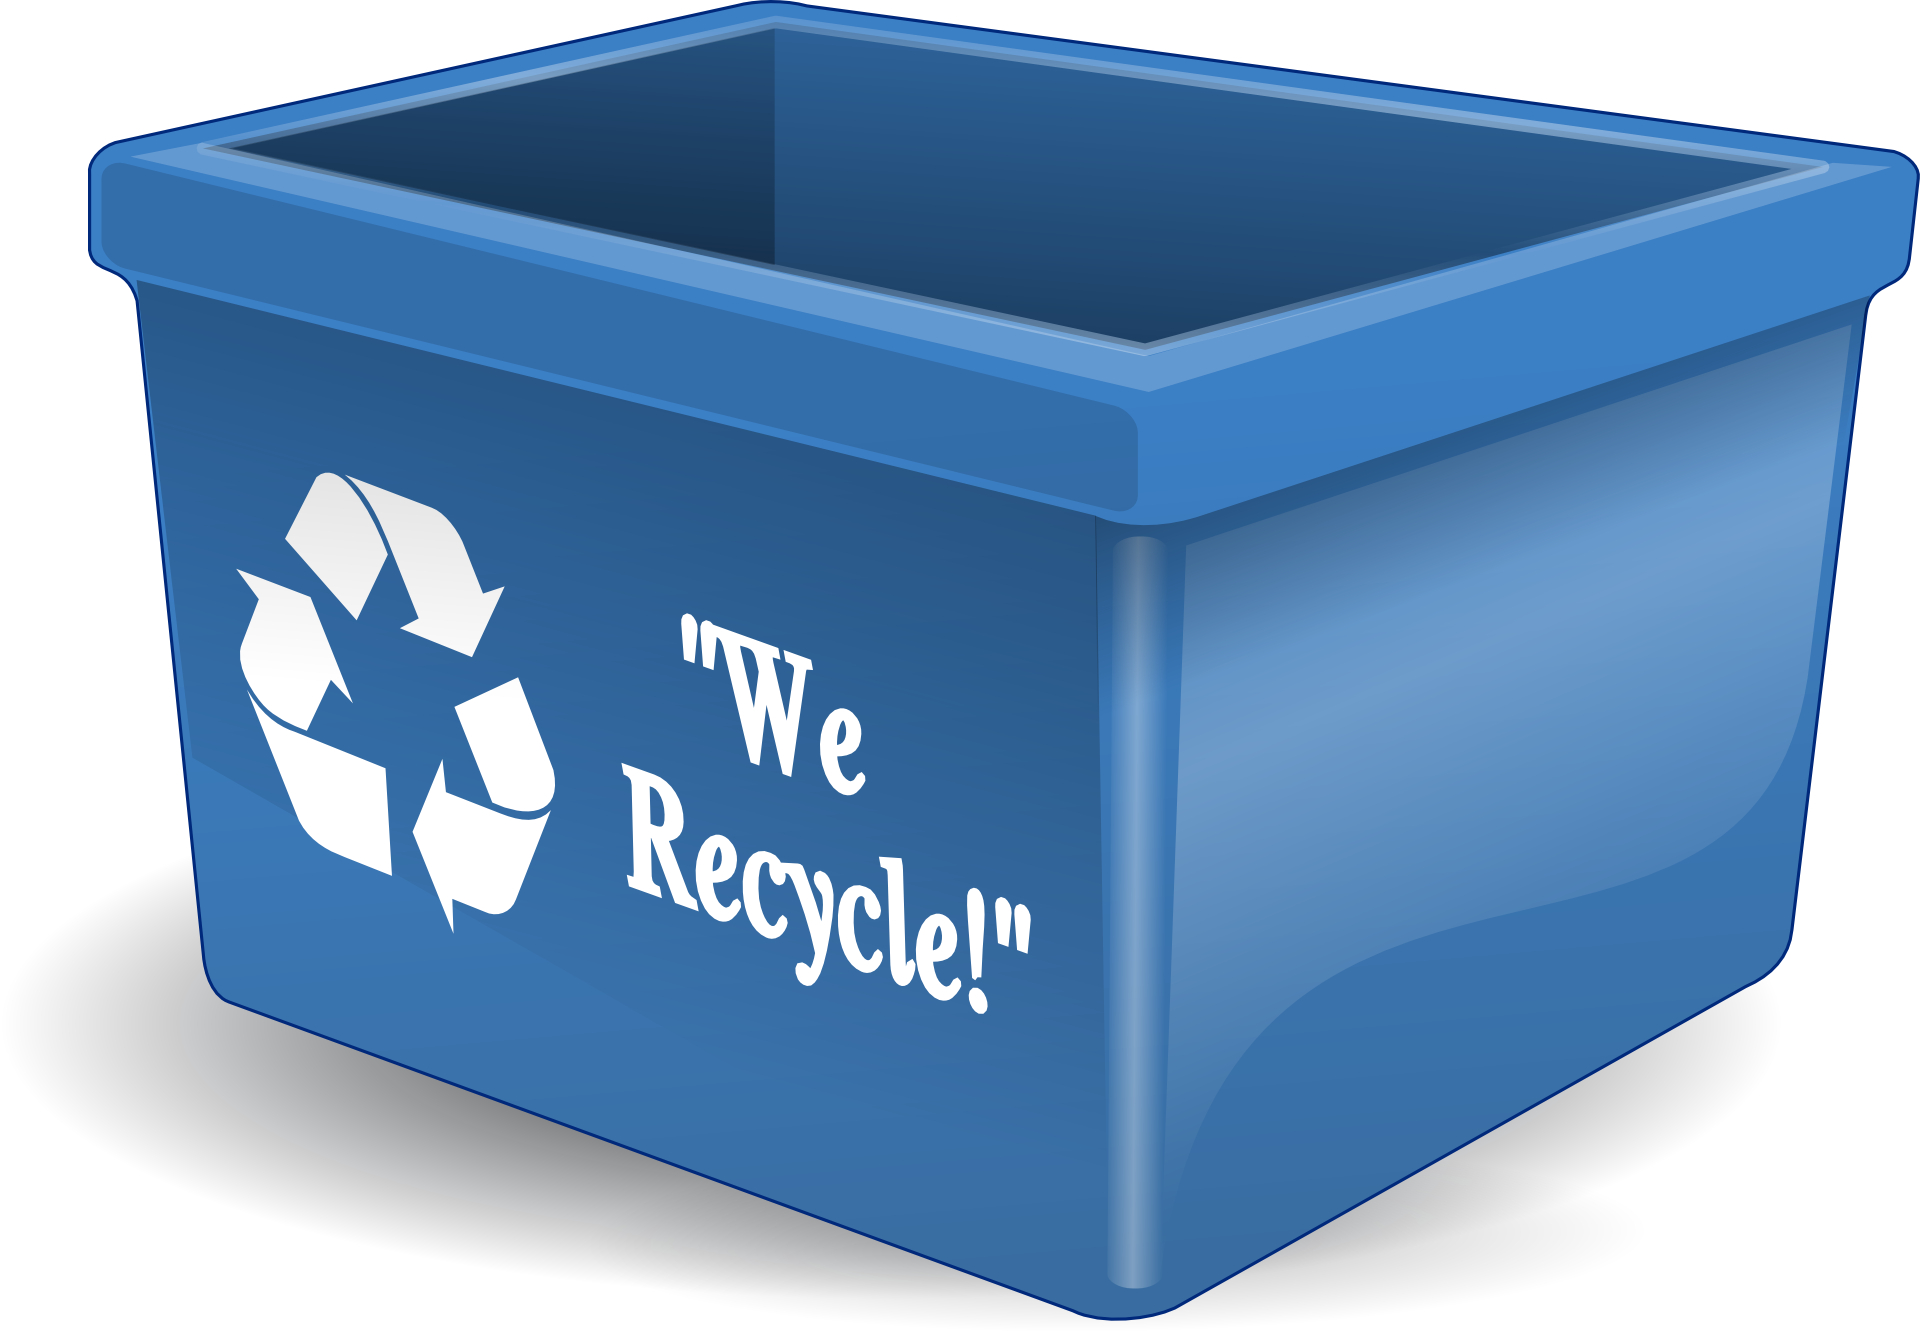 Recycle,box,blue recycling bins vector